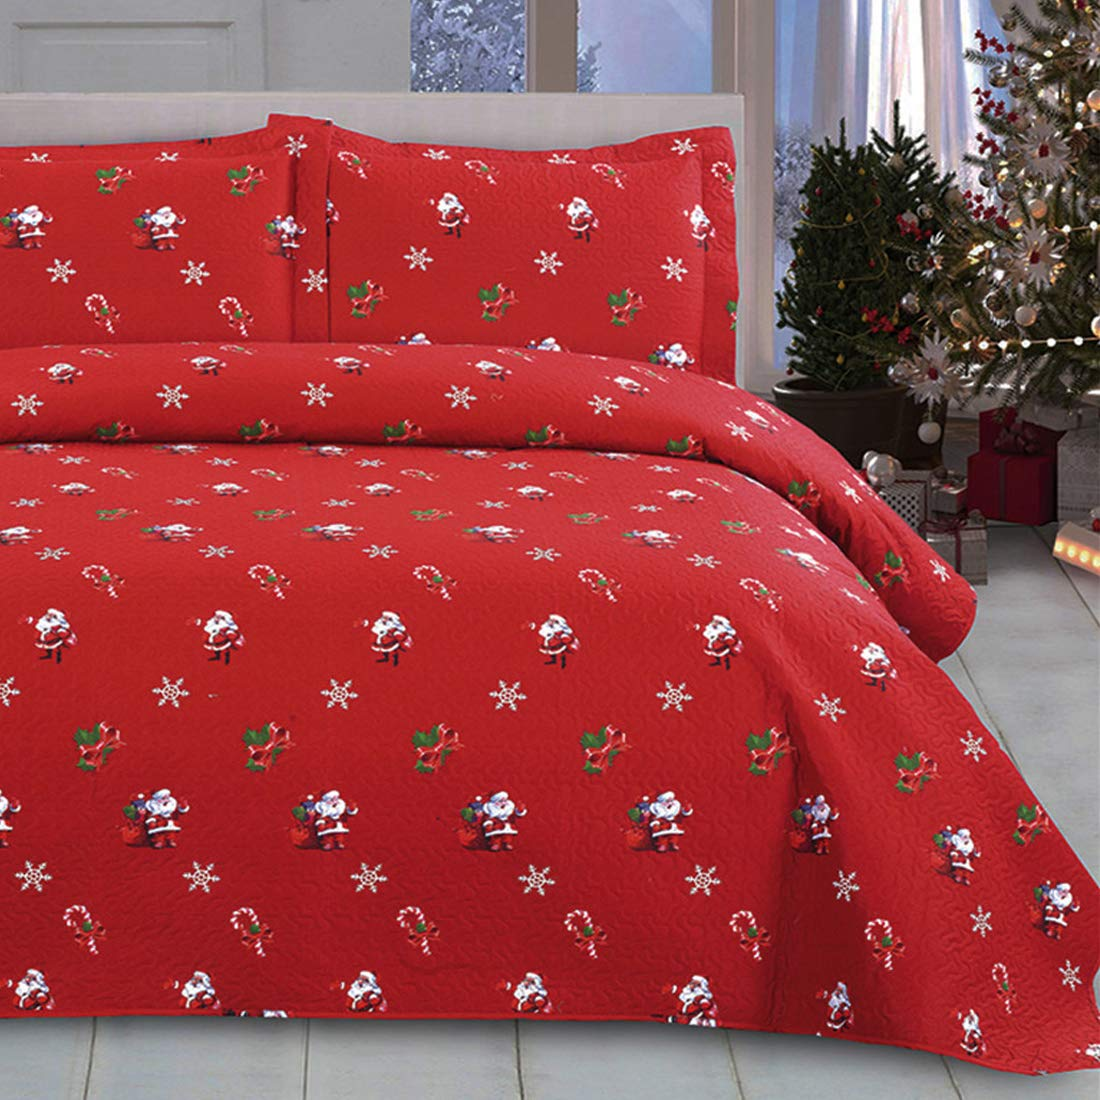 Oliven Christmas Quilts Set Twin Size Bedspreads Coverlet Set,Lightweight Blanket Reversible Bed Cover 3D Cartoon Christmas Santa Claus Christmas Bedding Christmas Home Decor,Red